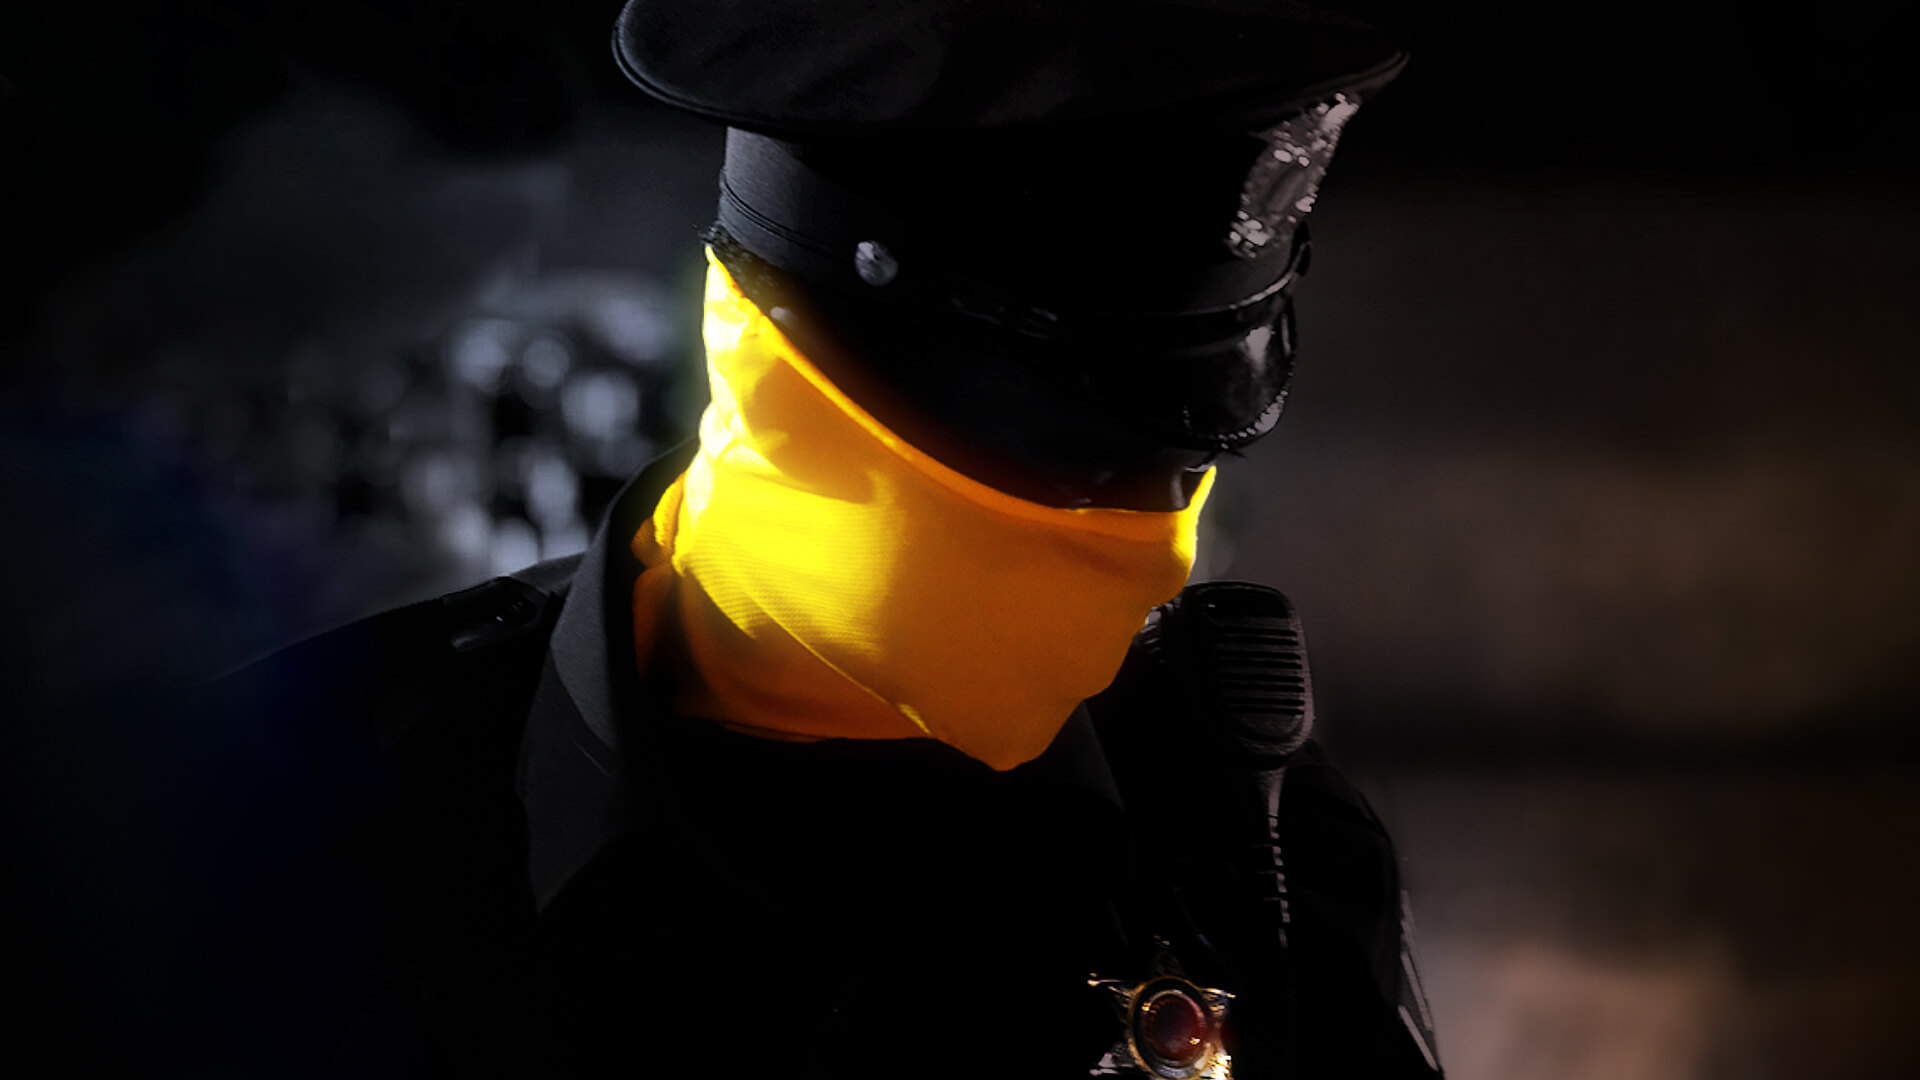 HBO-serien Watchmen. Foto: HBO